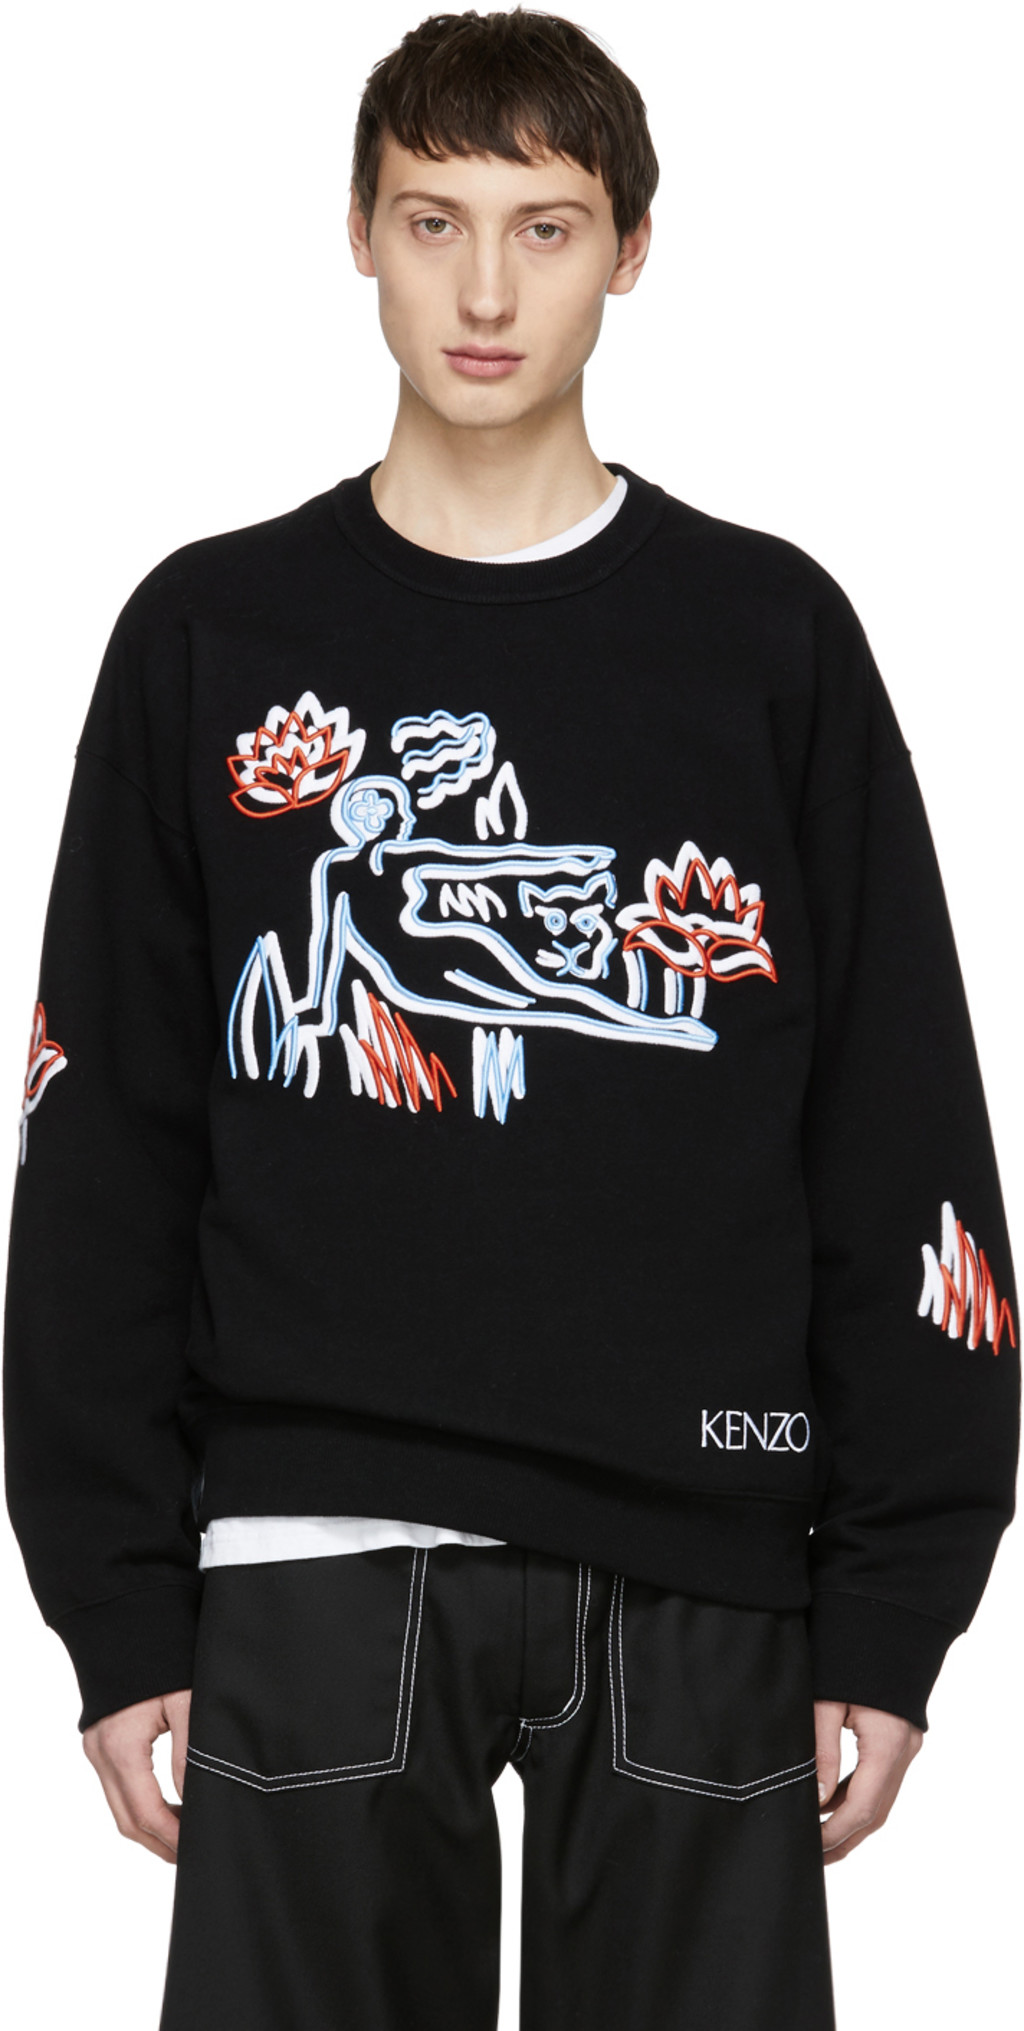 b61f4fd2189a Kenzo sweaters for Men